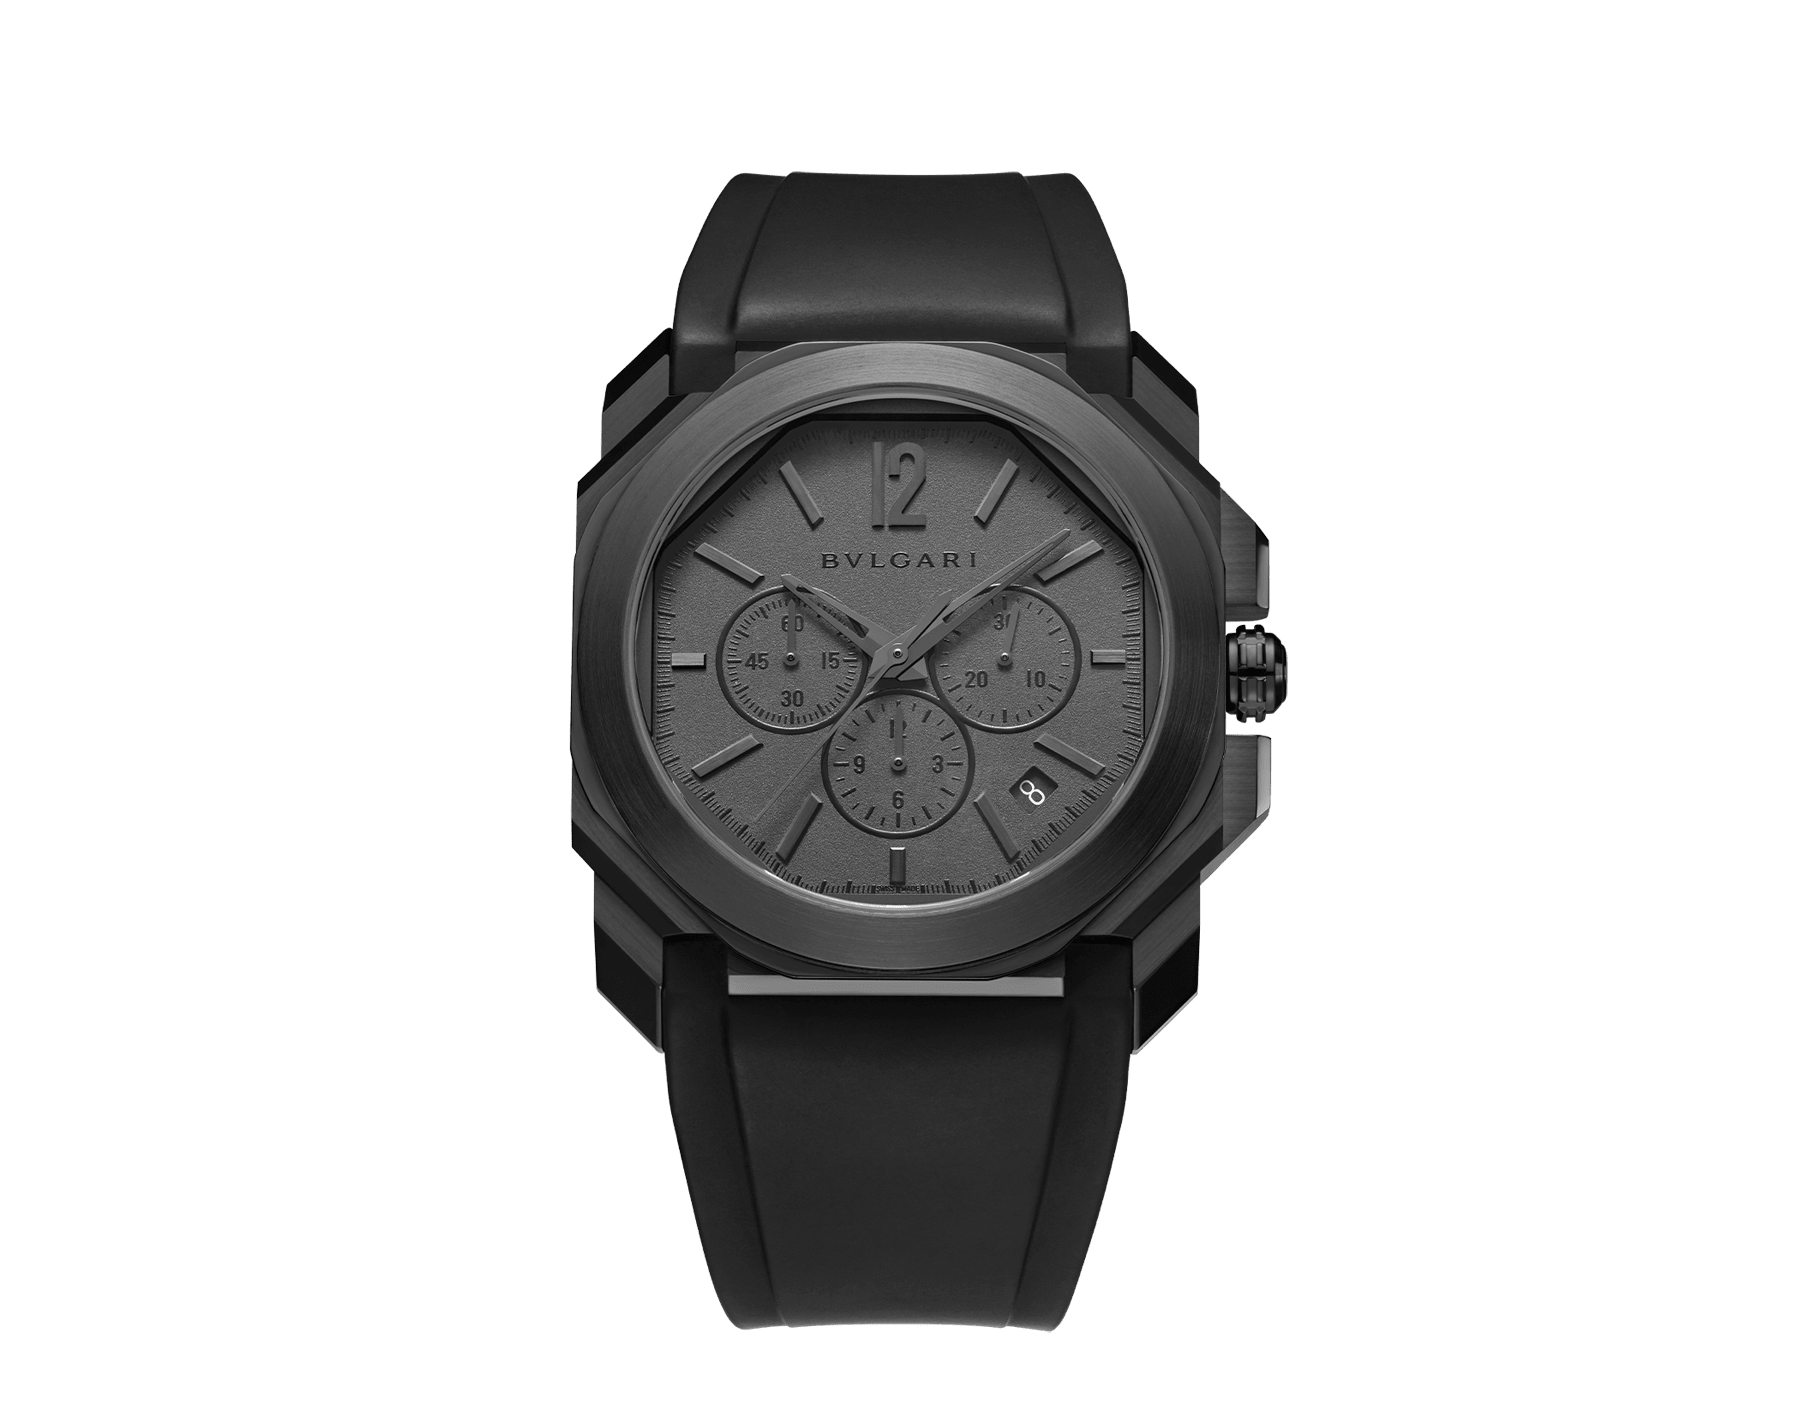 Octo L'Originale watch with mechanical manufacture movement, integrated high-frequency chronograph (5Hz), column wheel mechanism, silicon escapement, automatic winding and date, stainless steel case treated with black Diamond Like Carbon, grey dial and black rubber bracelet 103027 image 1